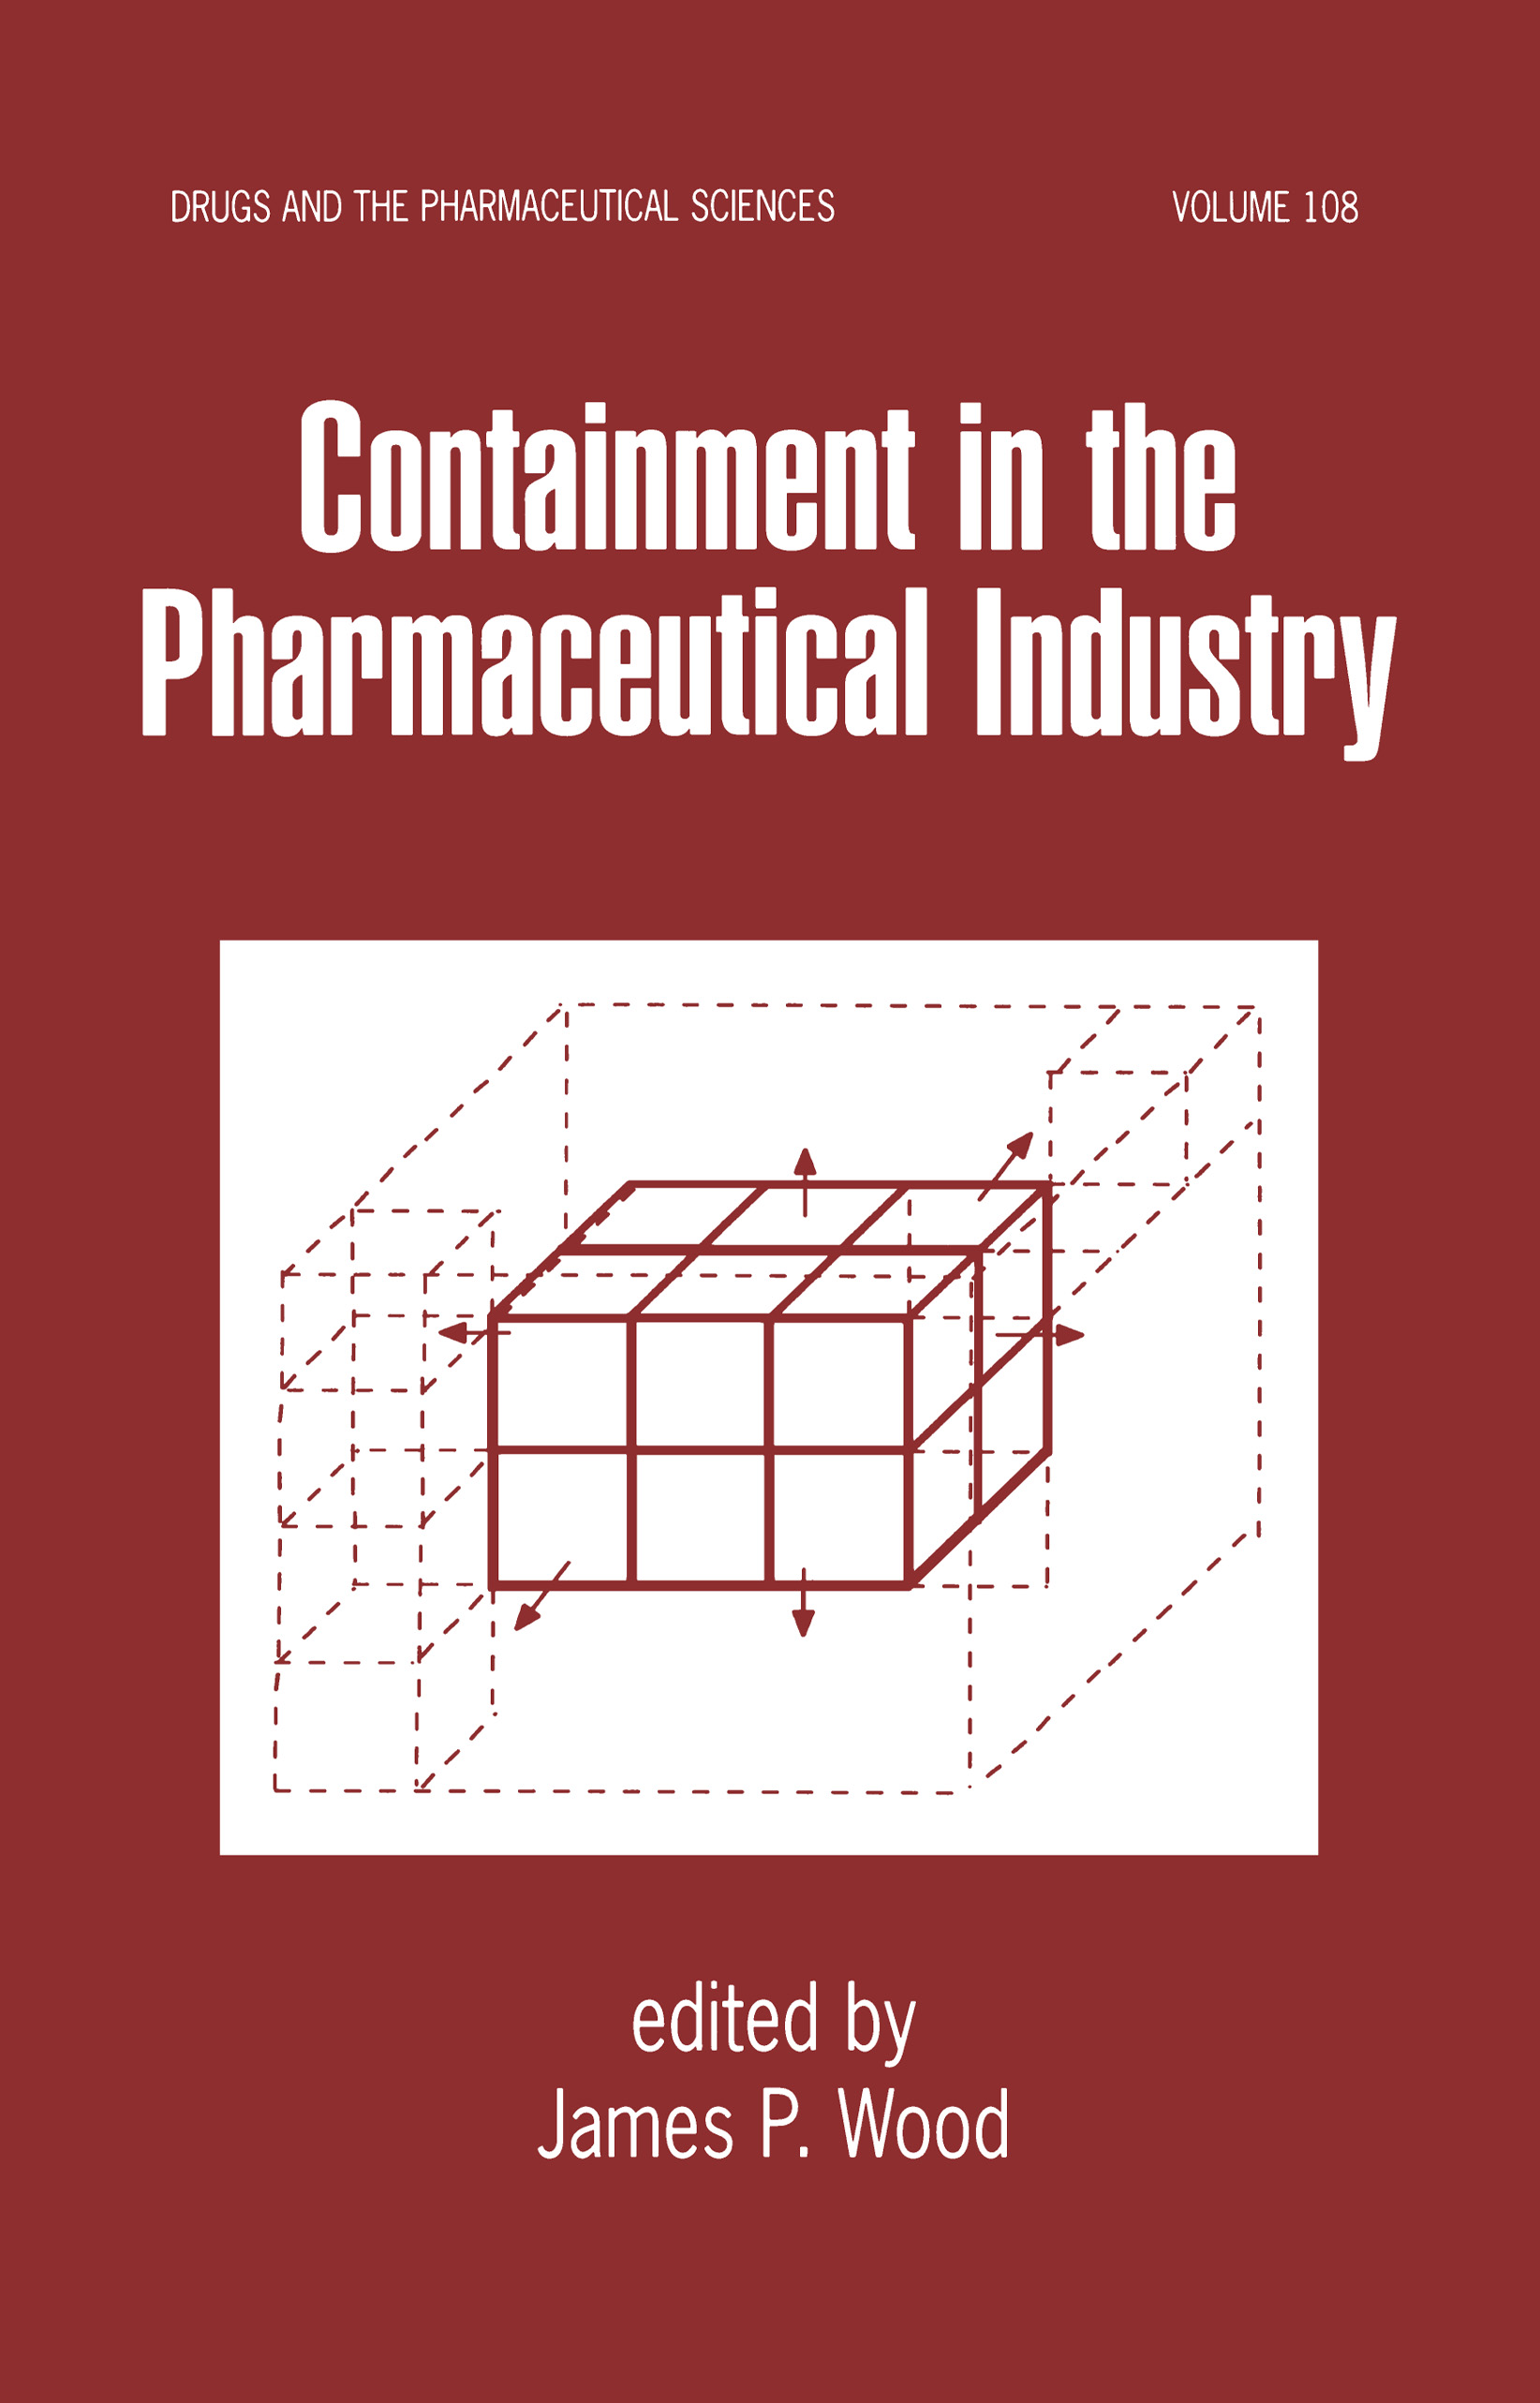 Containment in the Pharmaceutical Industry